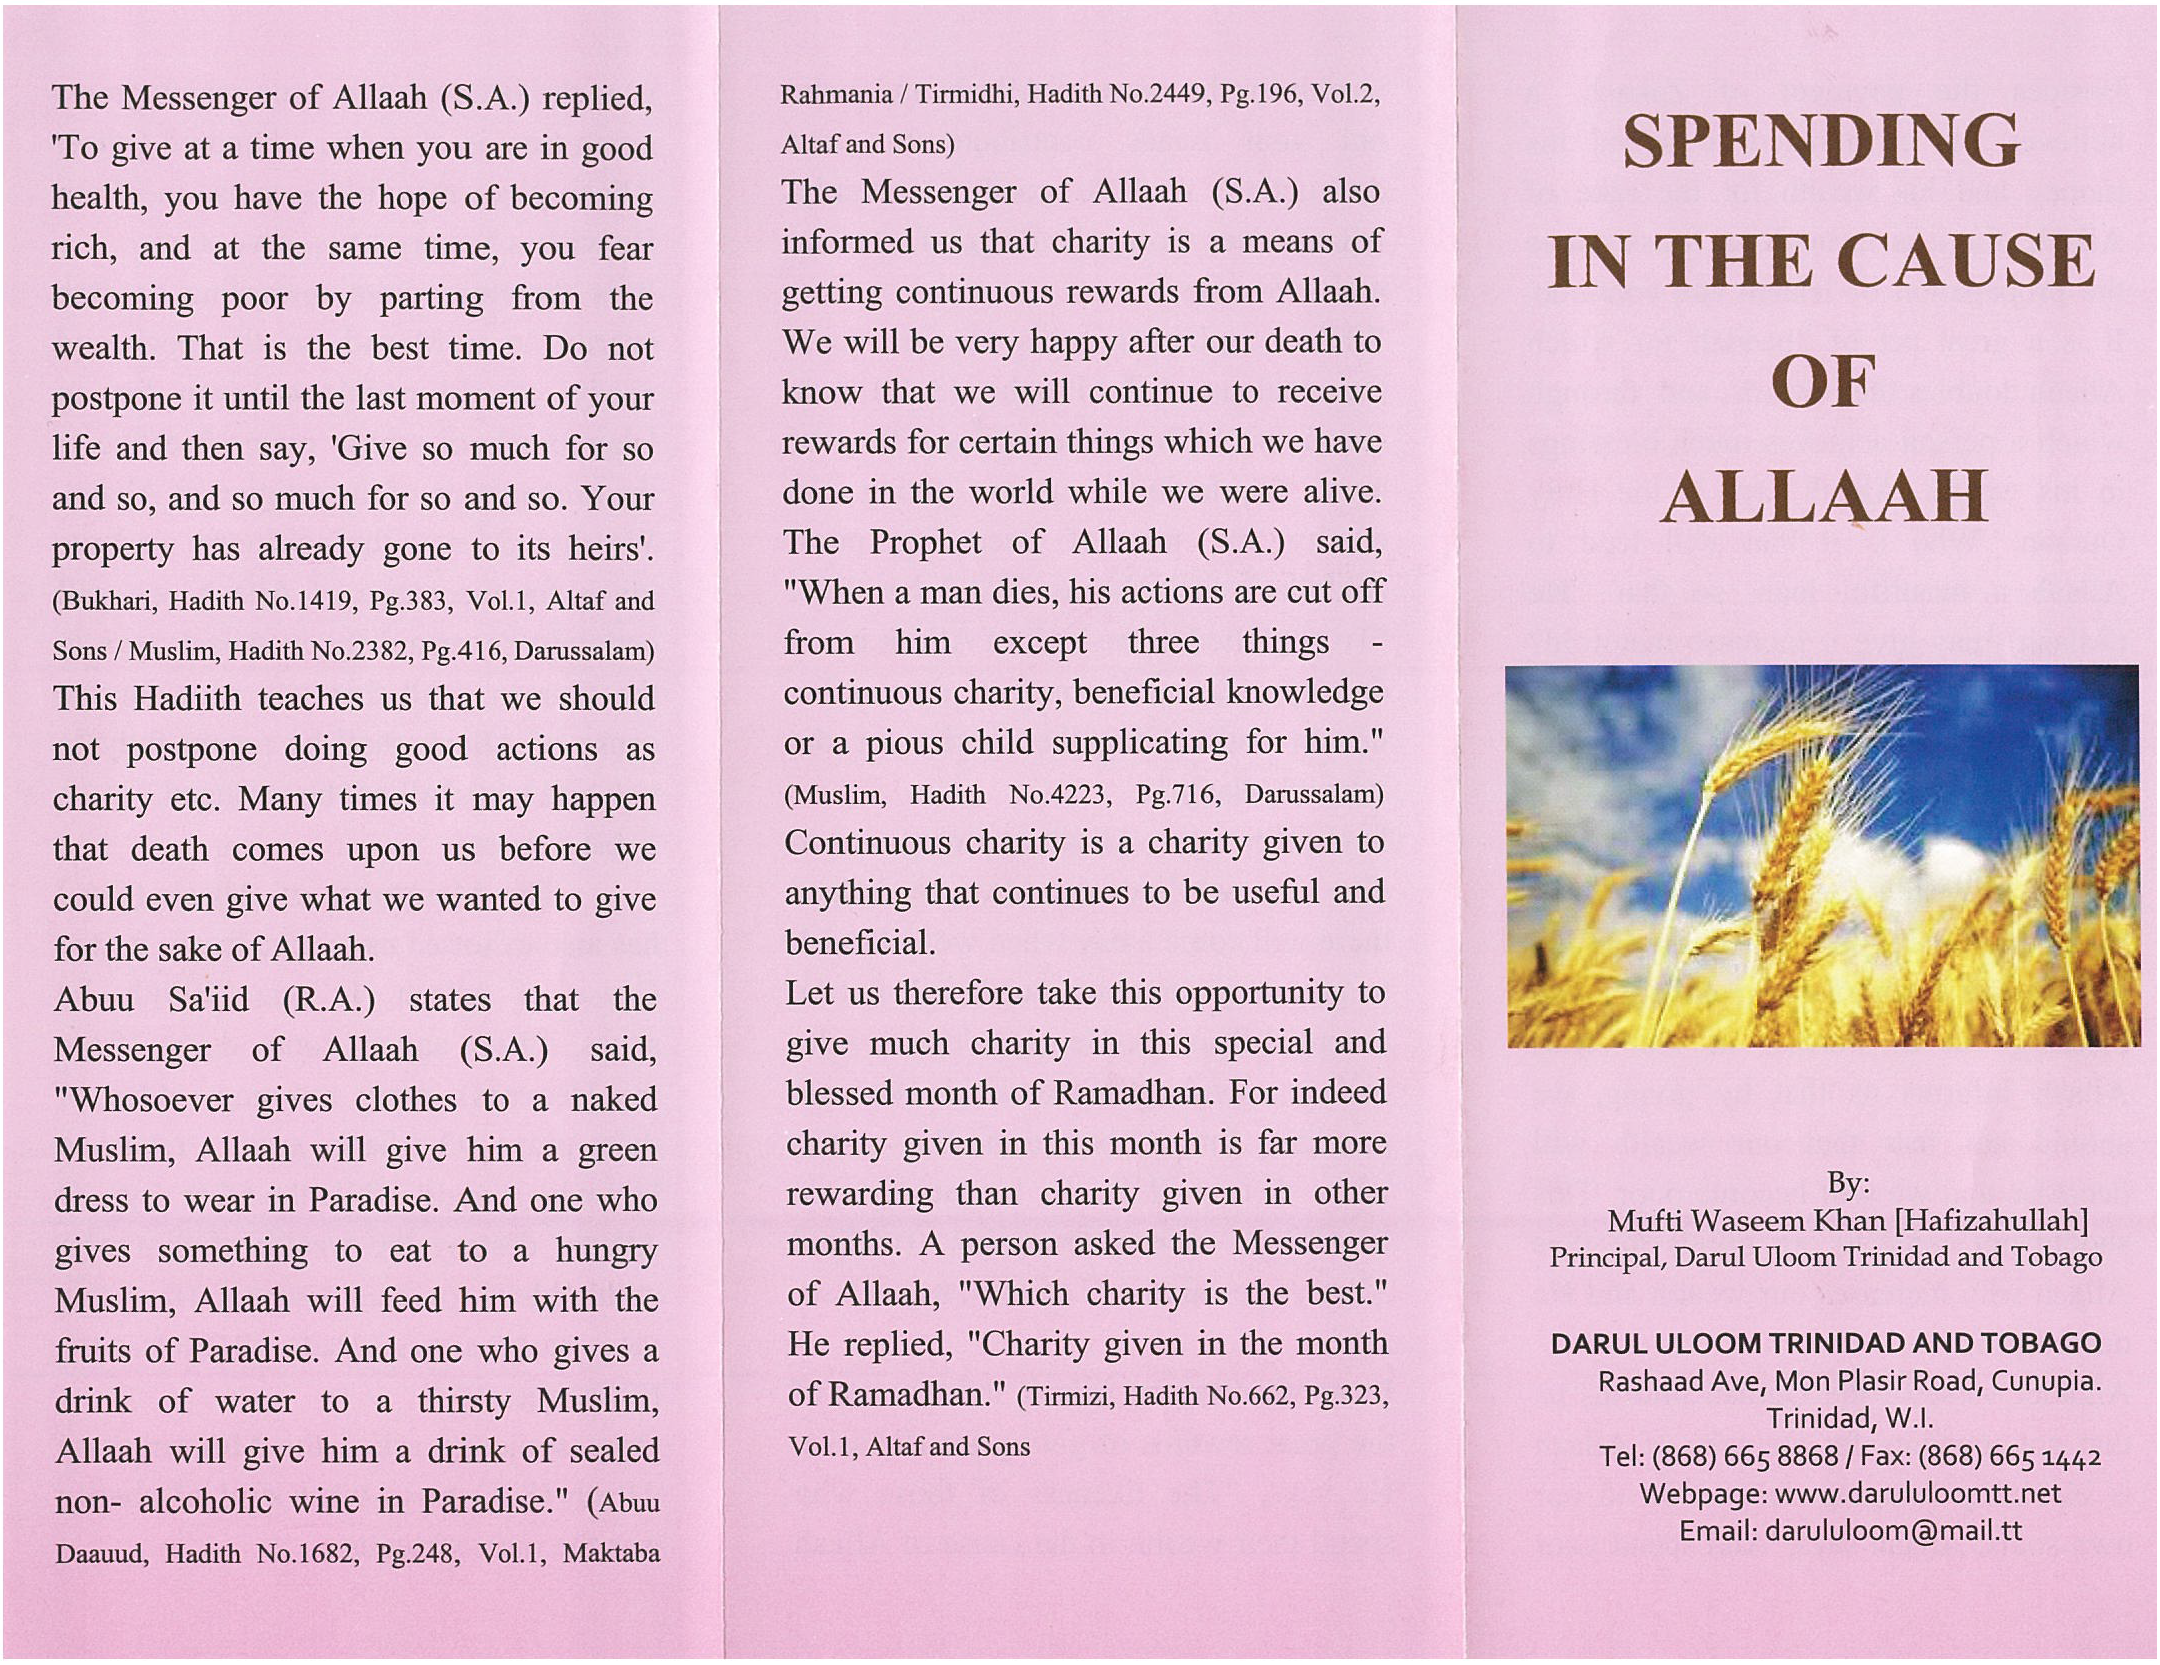 Spending In The Cause of Allah (Palm Flex)